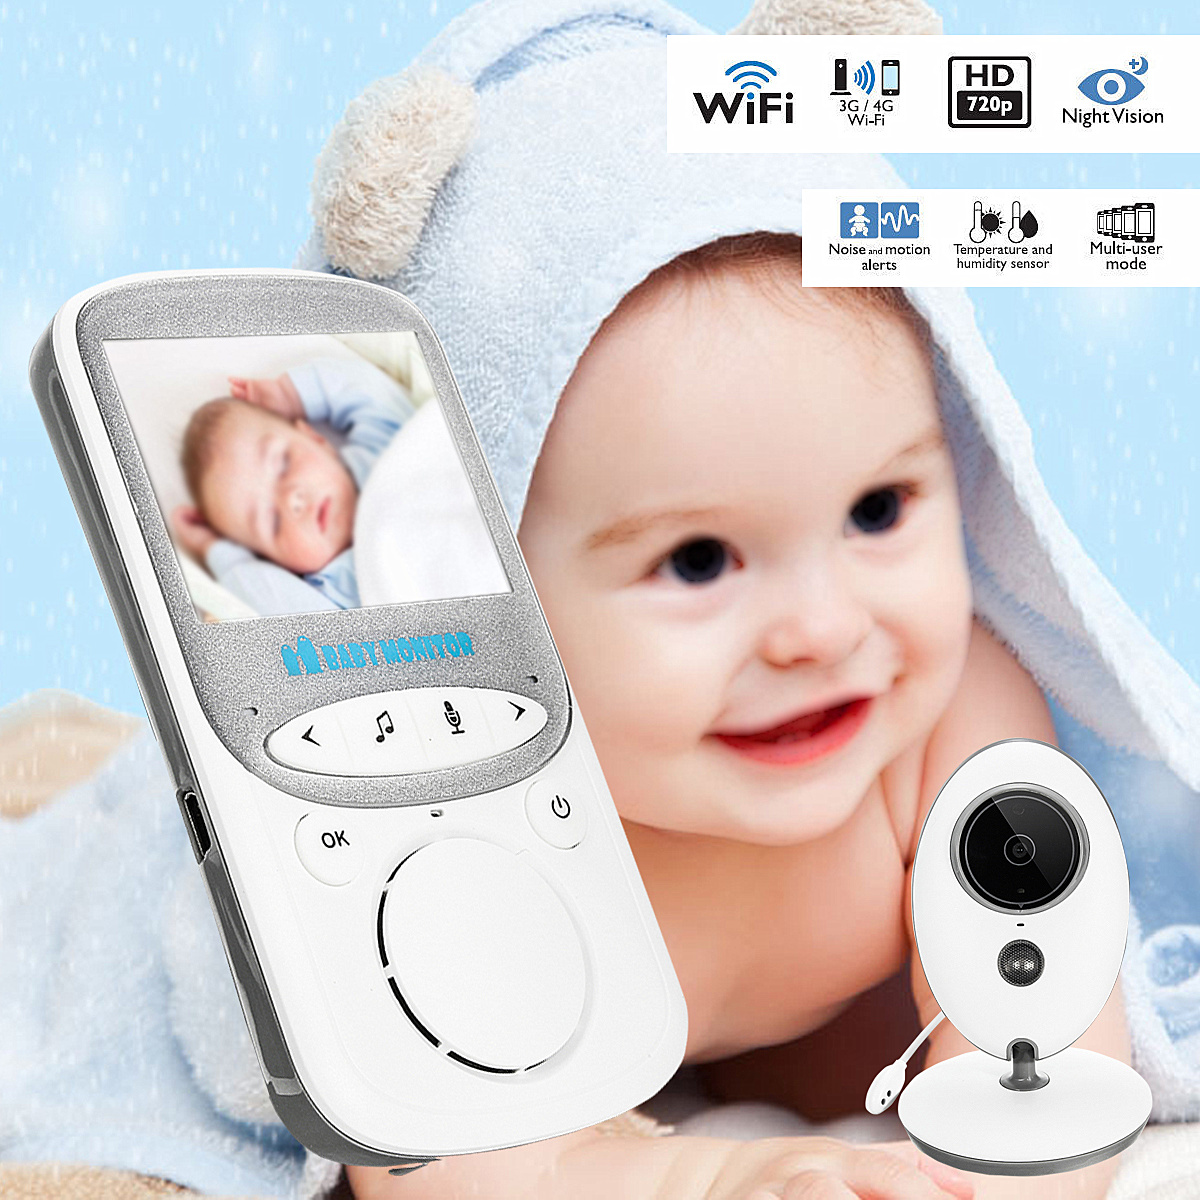 2.4 Inch 2.4G Digital LCD Wireless Baby Monitor Night Vision Audio Video Security Camera 2 Way Babysitter Talk Radio Monitoring2.4 Inch 2.4G Digital LCD Wireless Baby Monitor Night Vision Audio Video Security Camera 2 Way Babysitter Talk Radio Monitoring